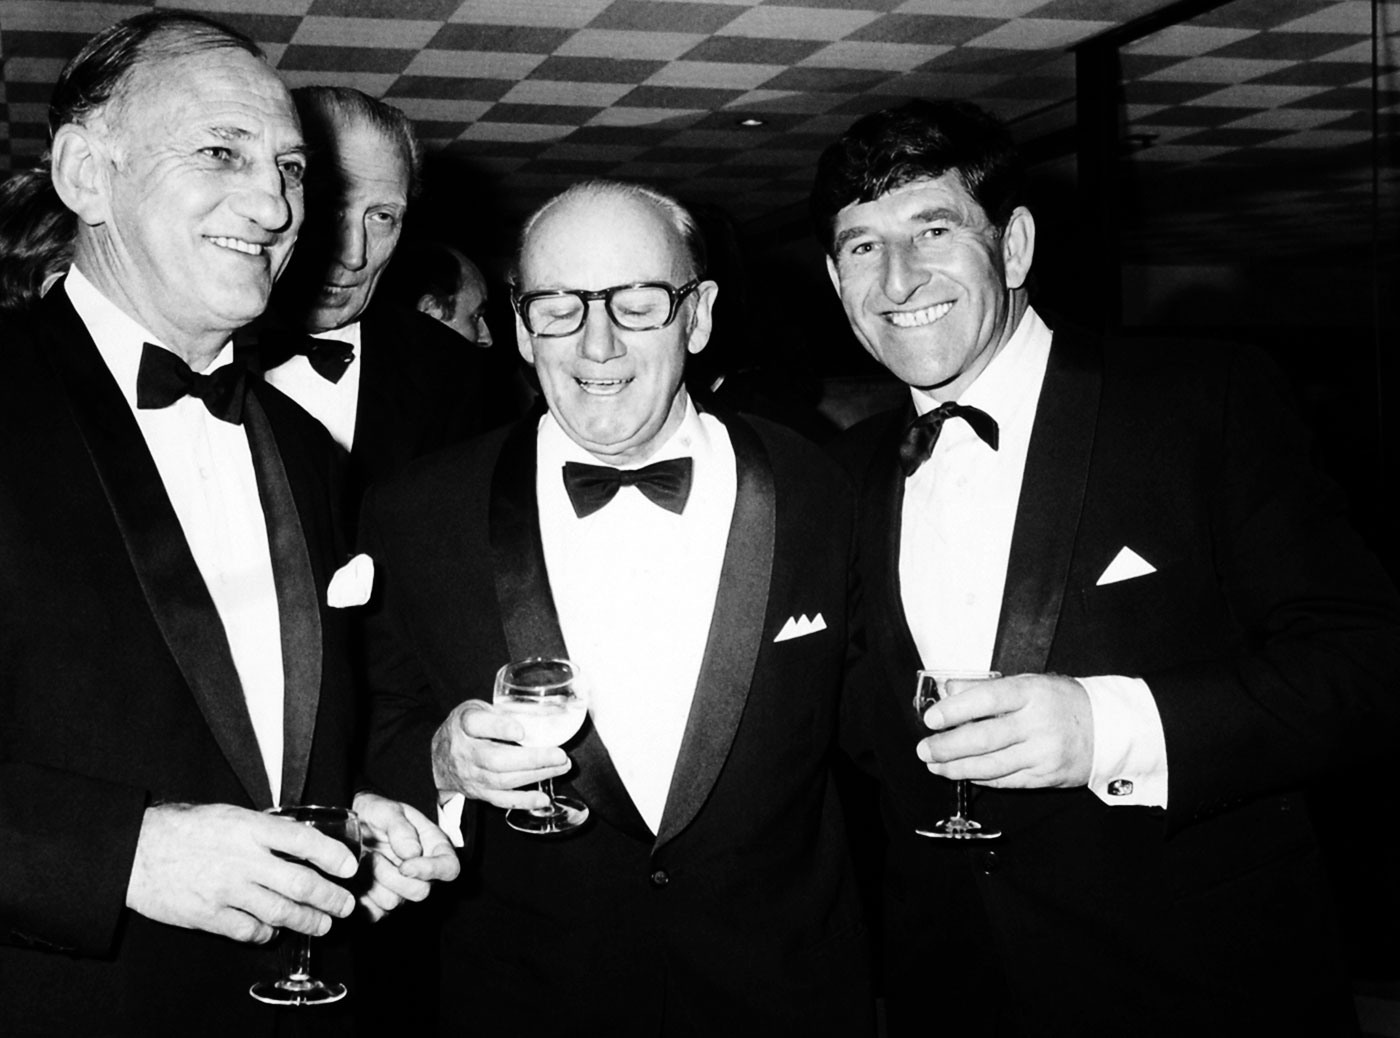 Len Hutton (first from left), Don Bradman and Ken Barrington at a charity event in London in 1974